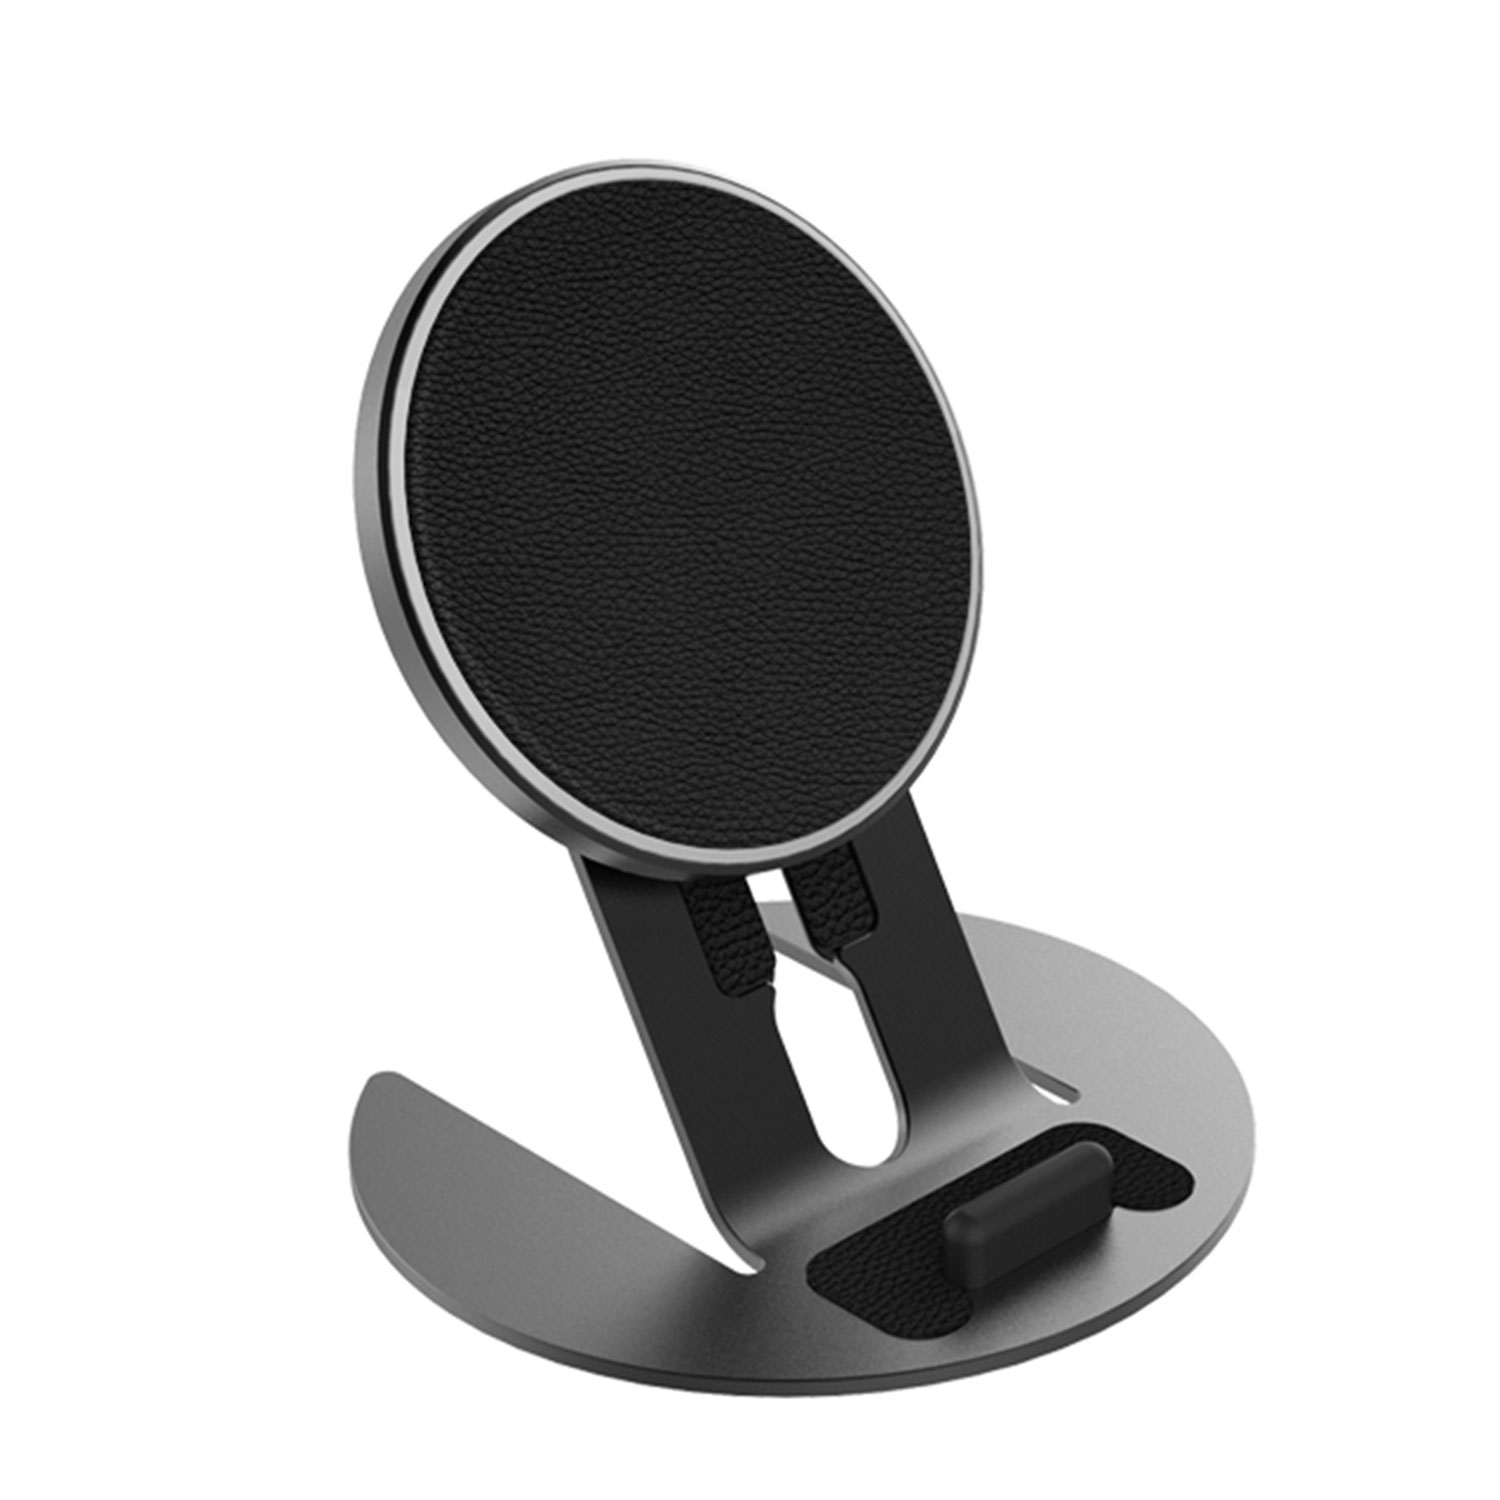 15W QI Wireless Charger for Samsung S6 S7 Edge S8 S9 Plus Note 5 8 Fast Charging Dock Stand Desk for iPhone X 8